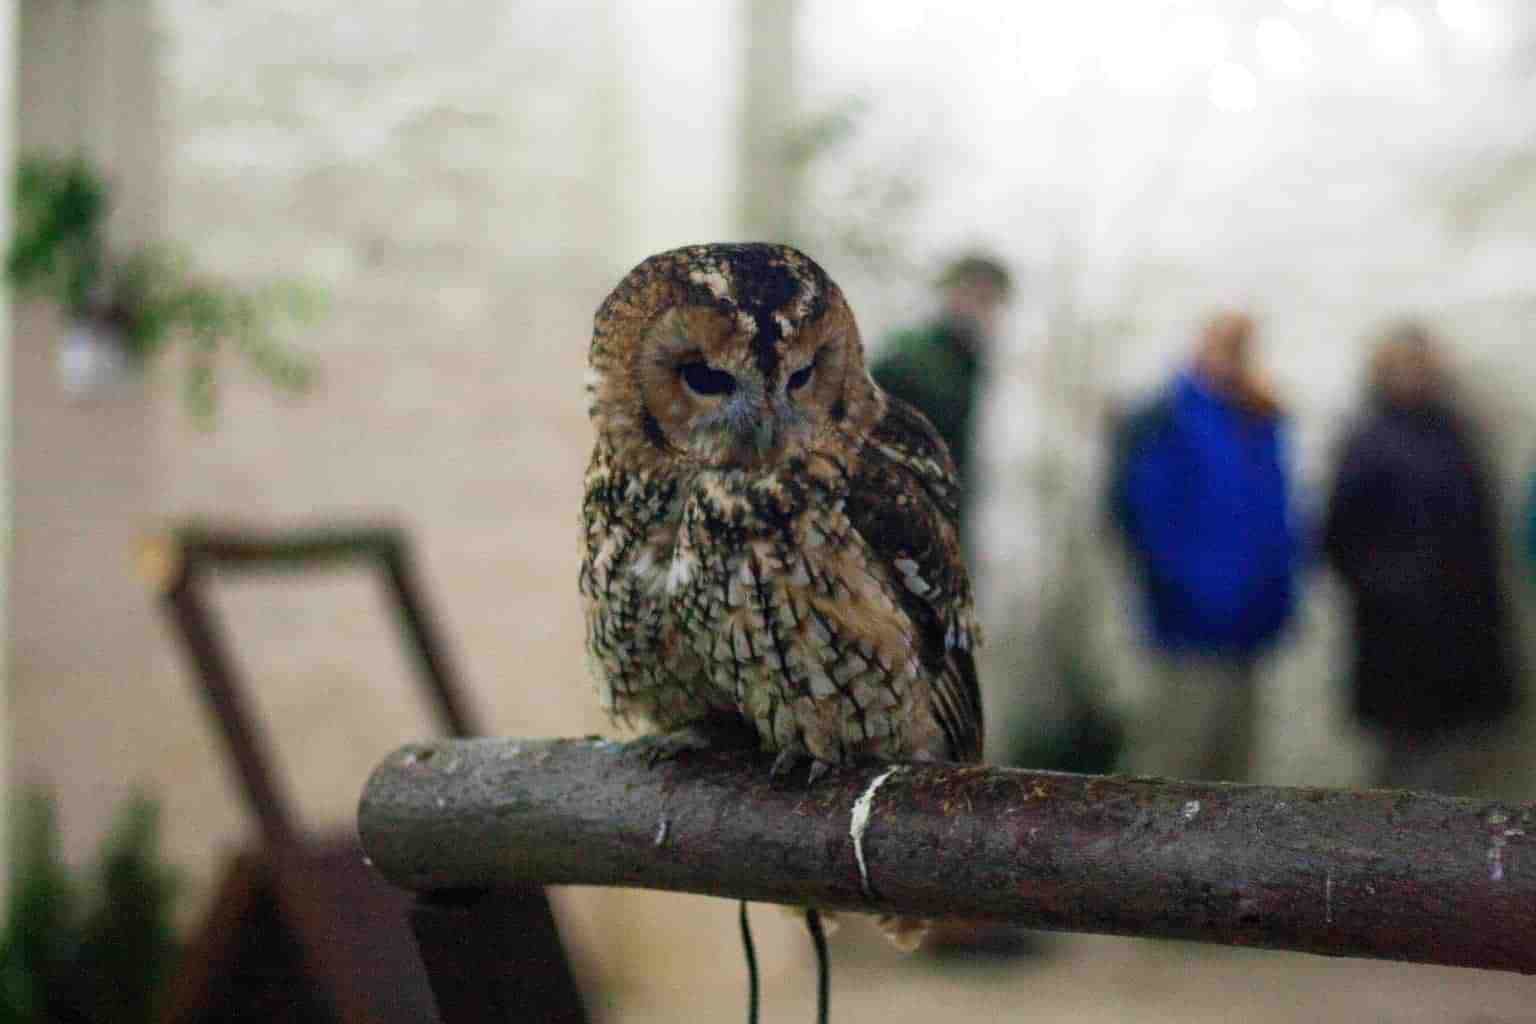 Tawny Owl at National Centre for Birds of Prey